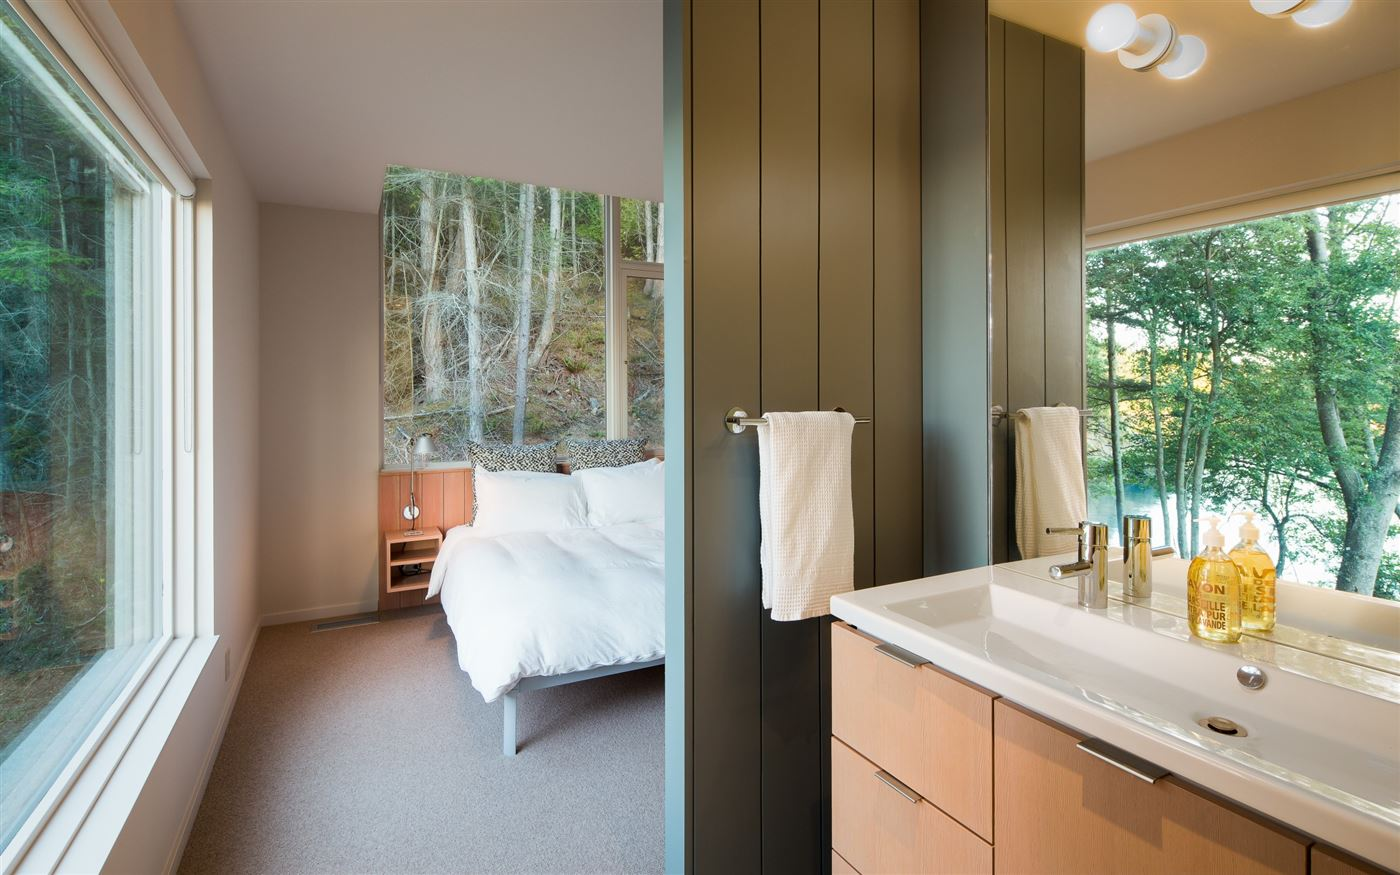 bedroom with its own bathroom in this contemporary wooden house